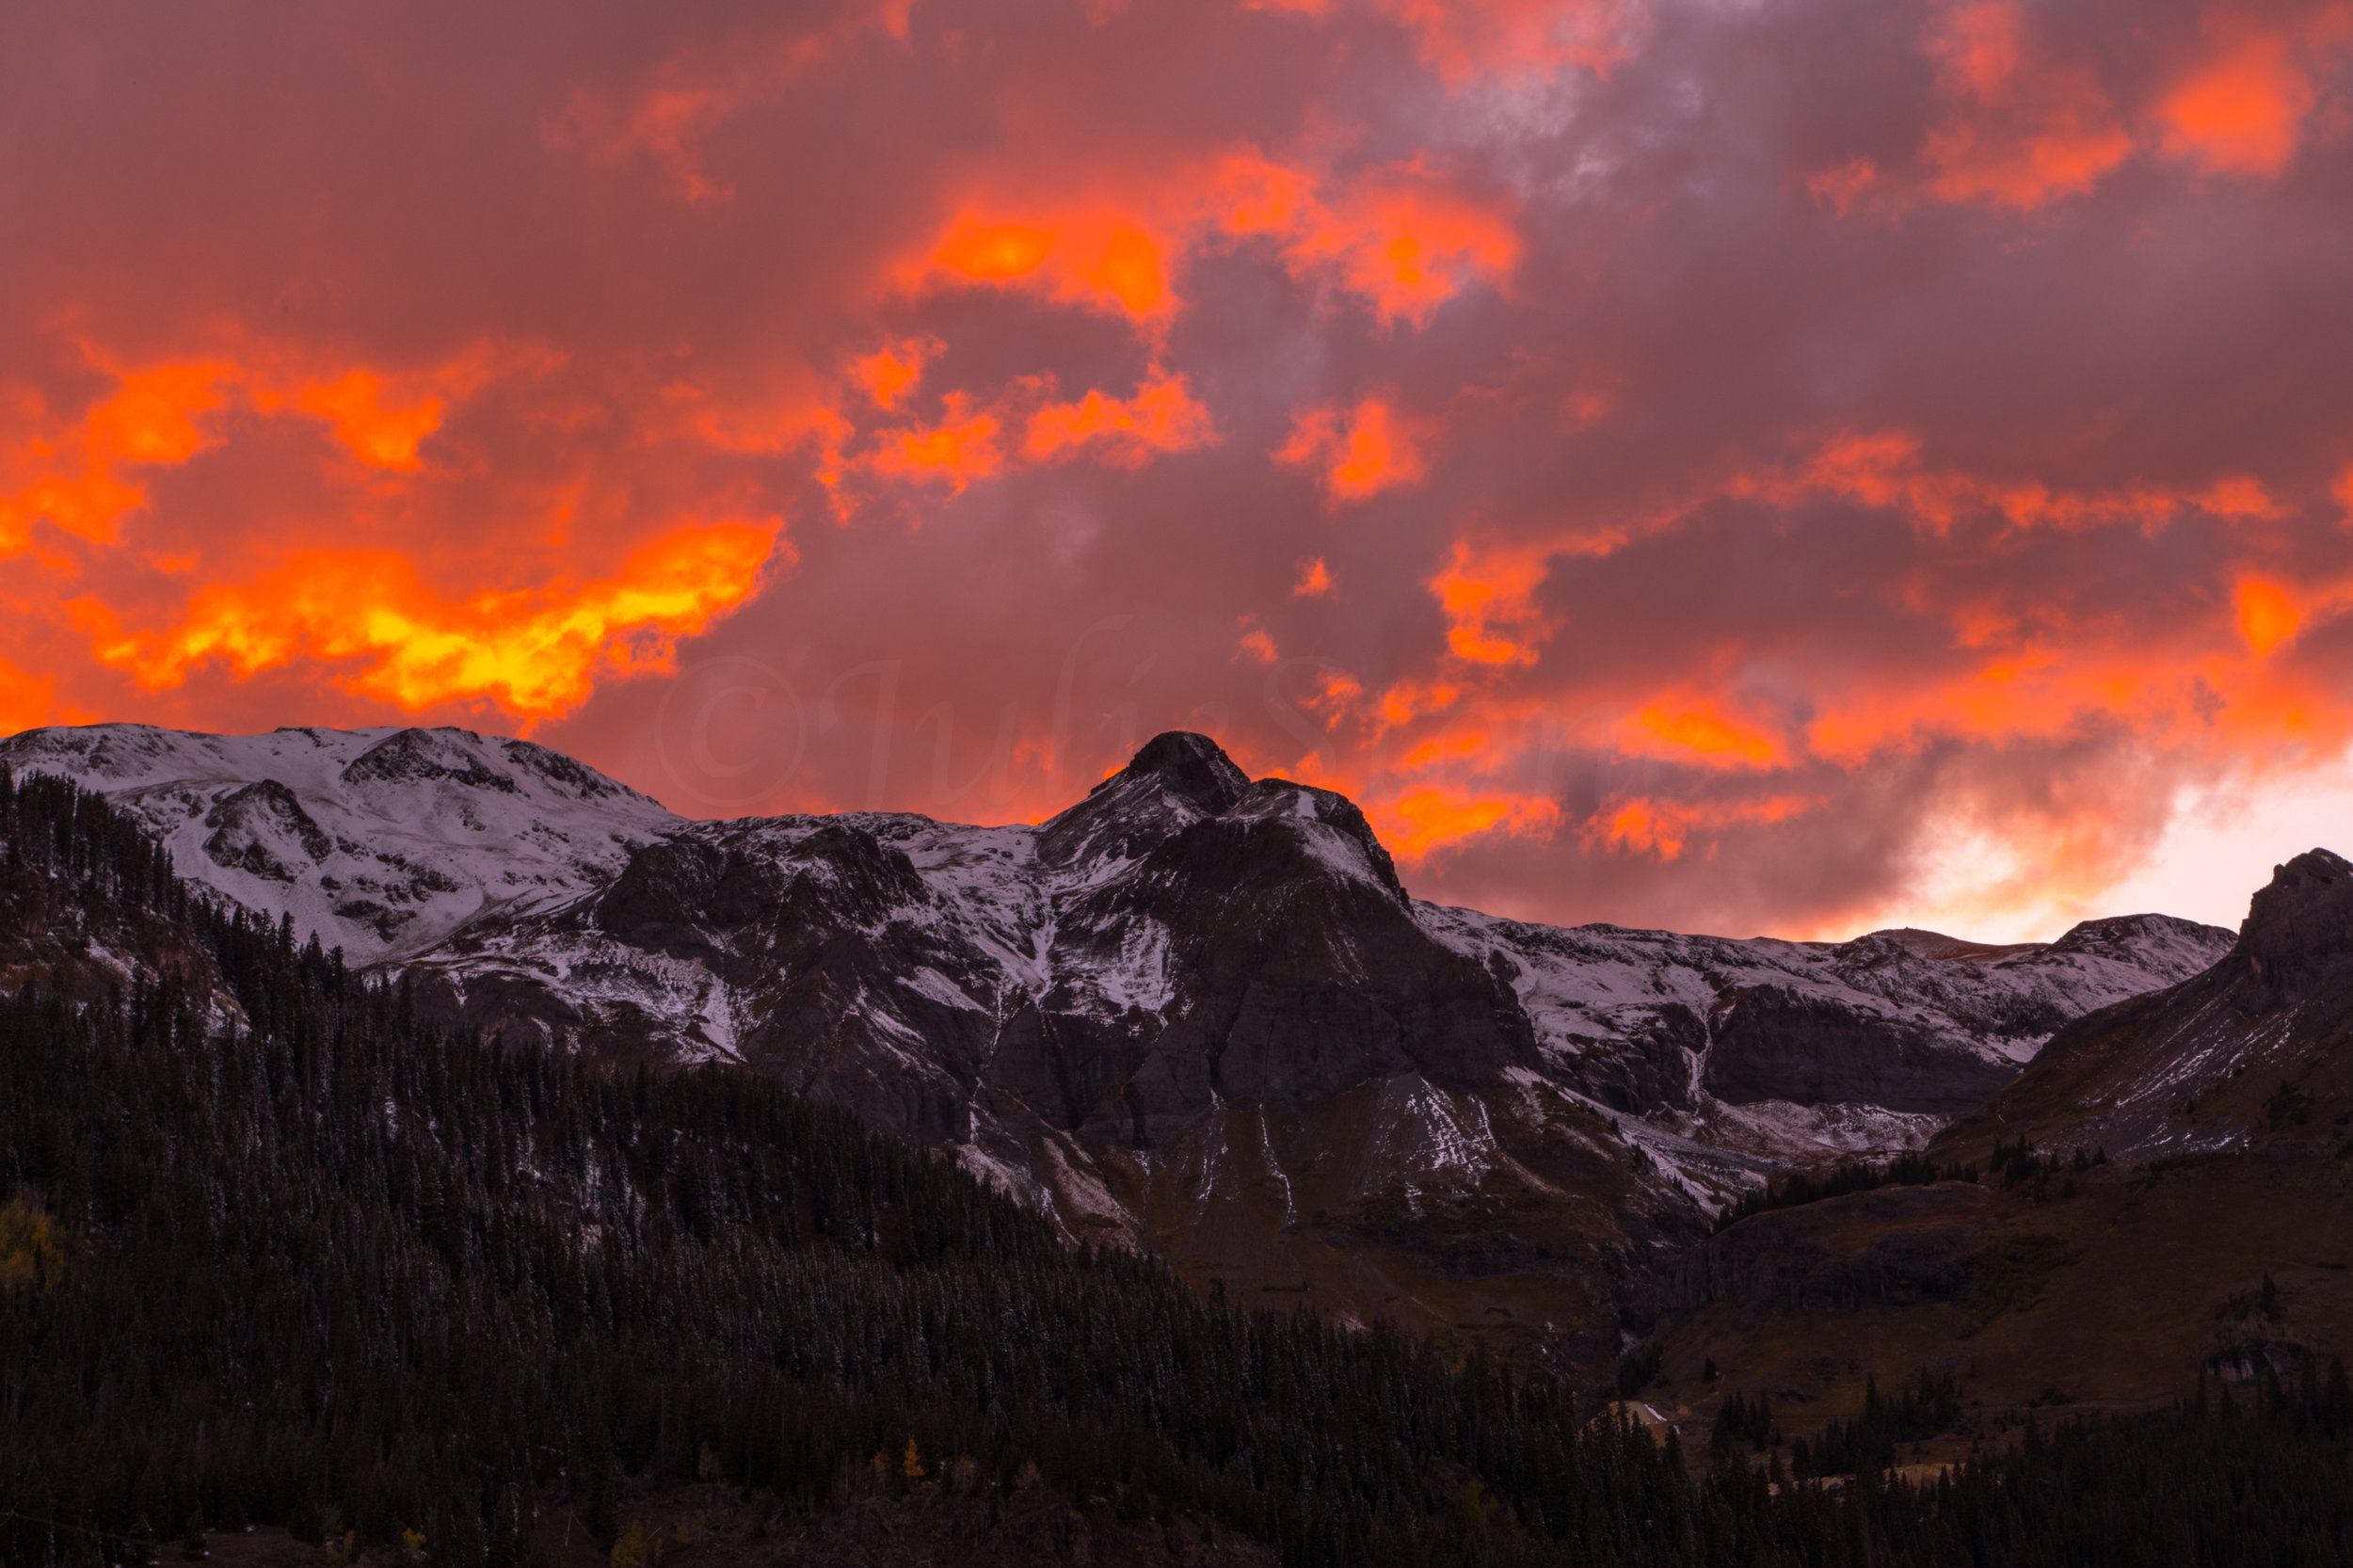 Red Mountain Sunset, Image # 5383